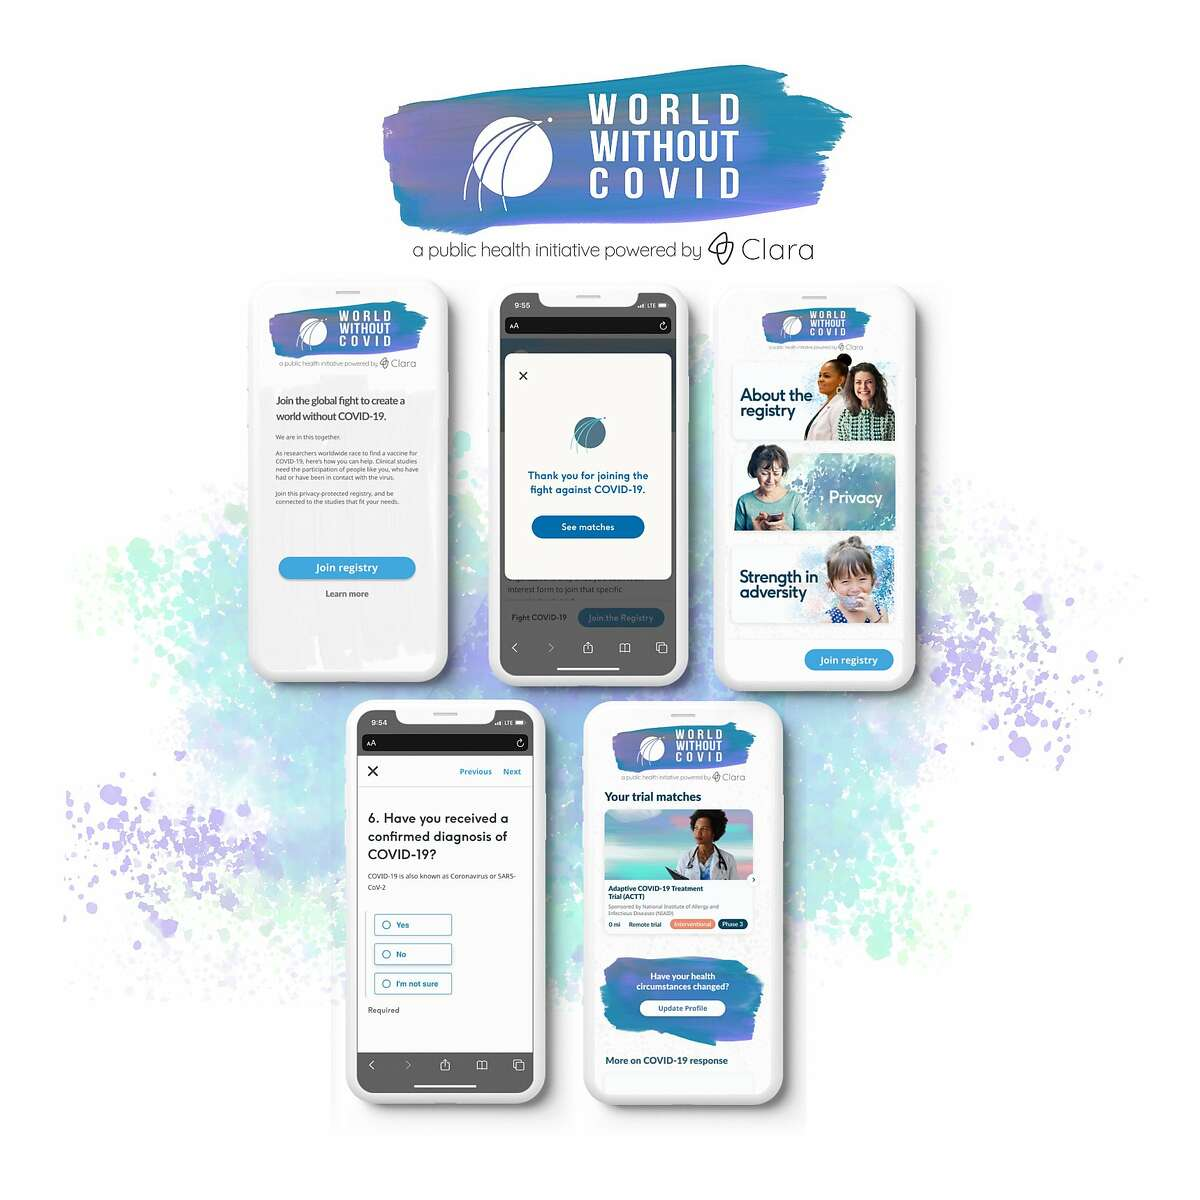 San Francisco startup Clara Health is helping to launch World Withoht Covid, a new website to connect people with coronavirus clinical trials.